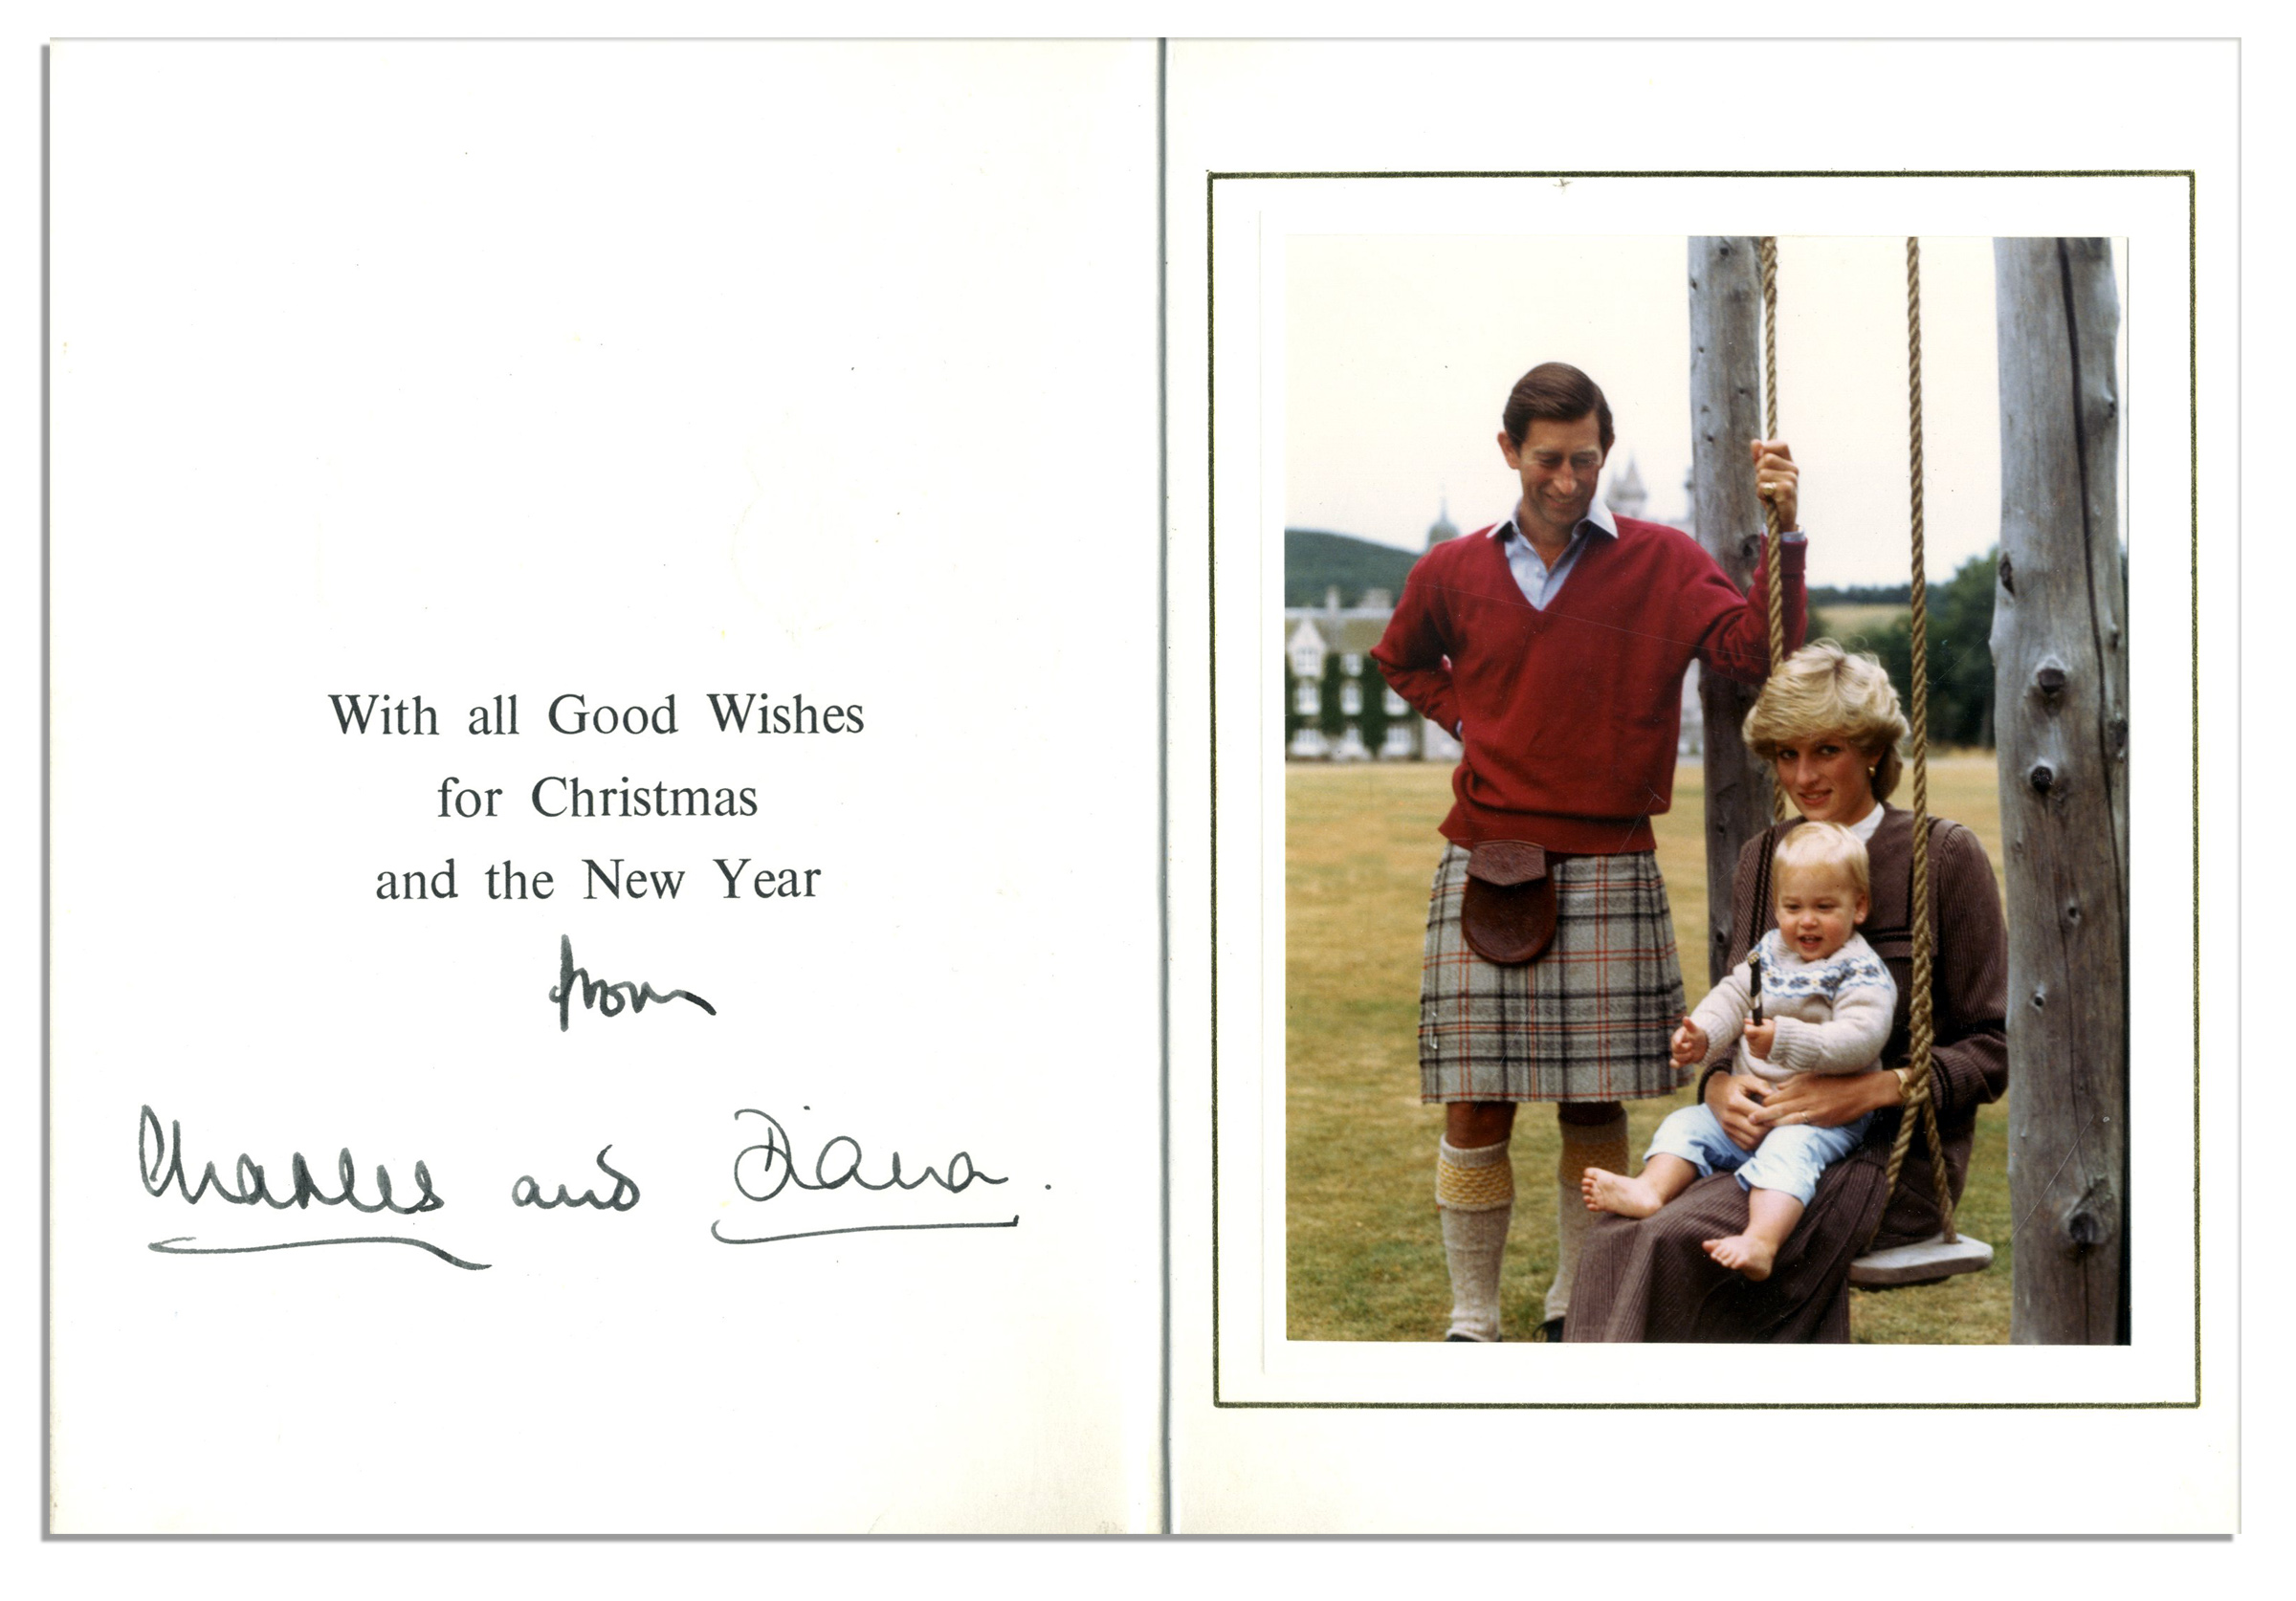 lot detail princess diana and prince charles signed christmas card from 1983 with family portrait featuring diana posing on a swing with baby prince william prince charles signed christmas card